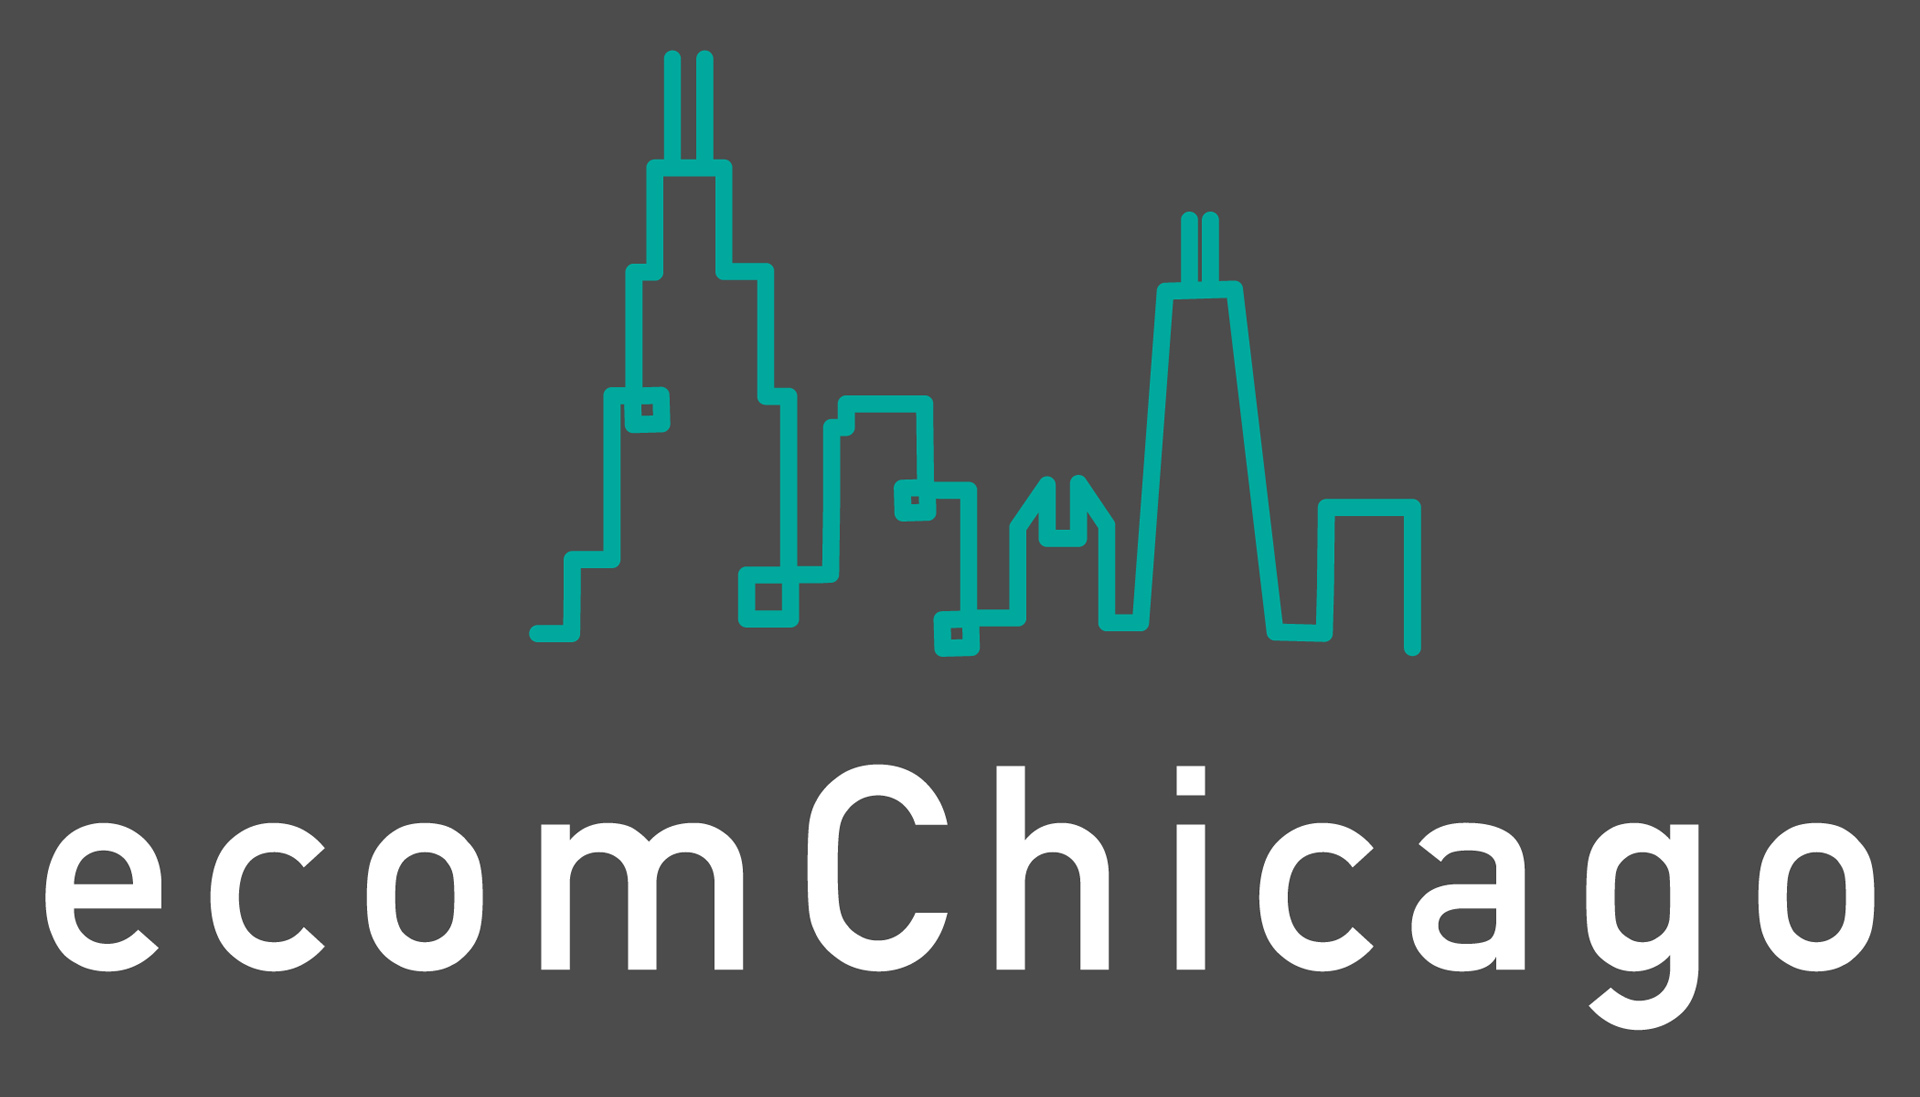 CJ Rosenbaum Speaking Event: eCom Chicago 2018